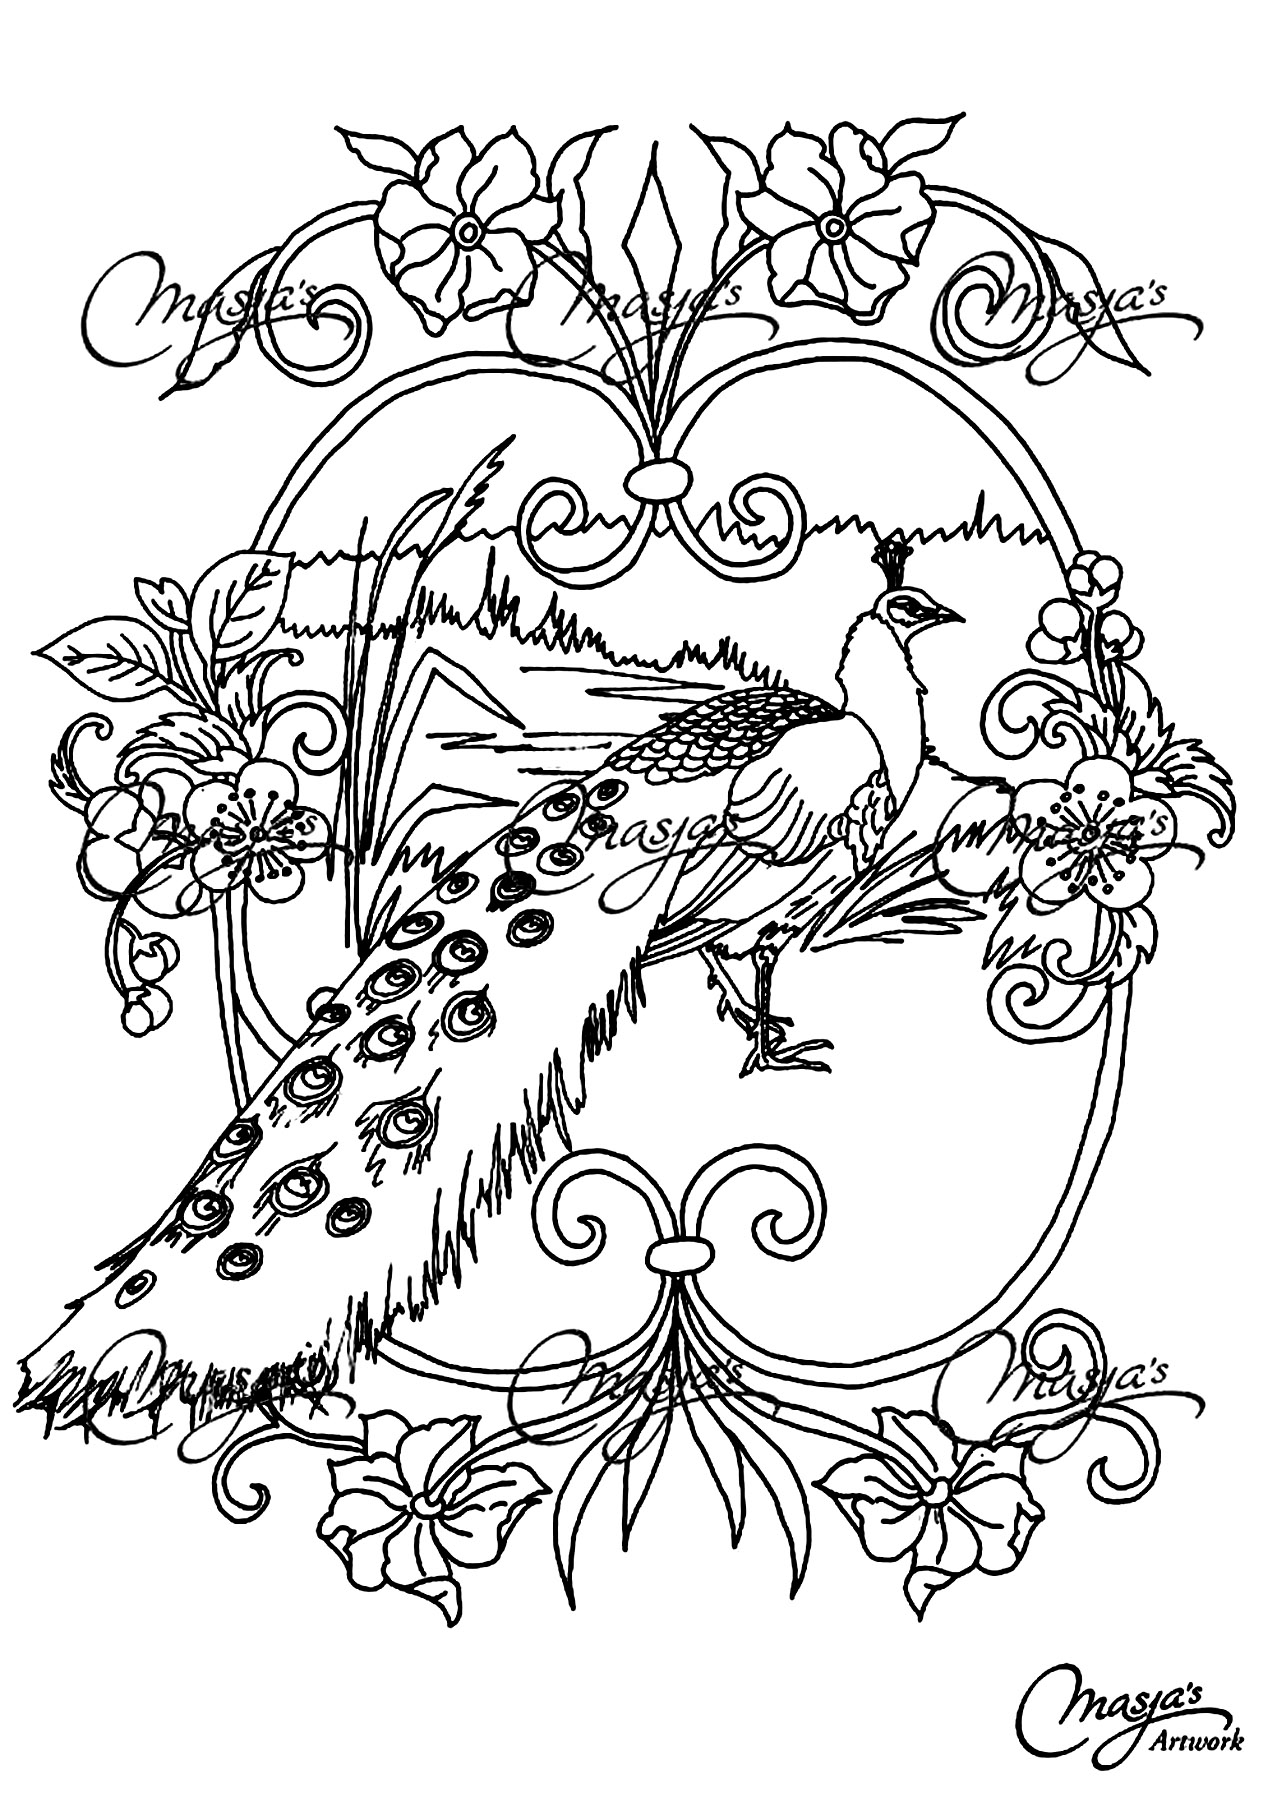 Coloring page of a beautiful peacock